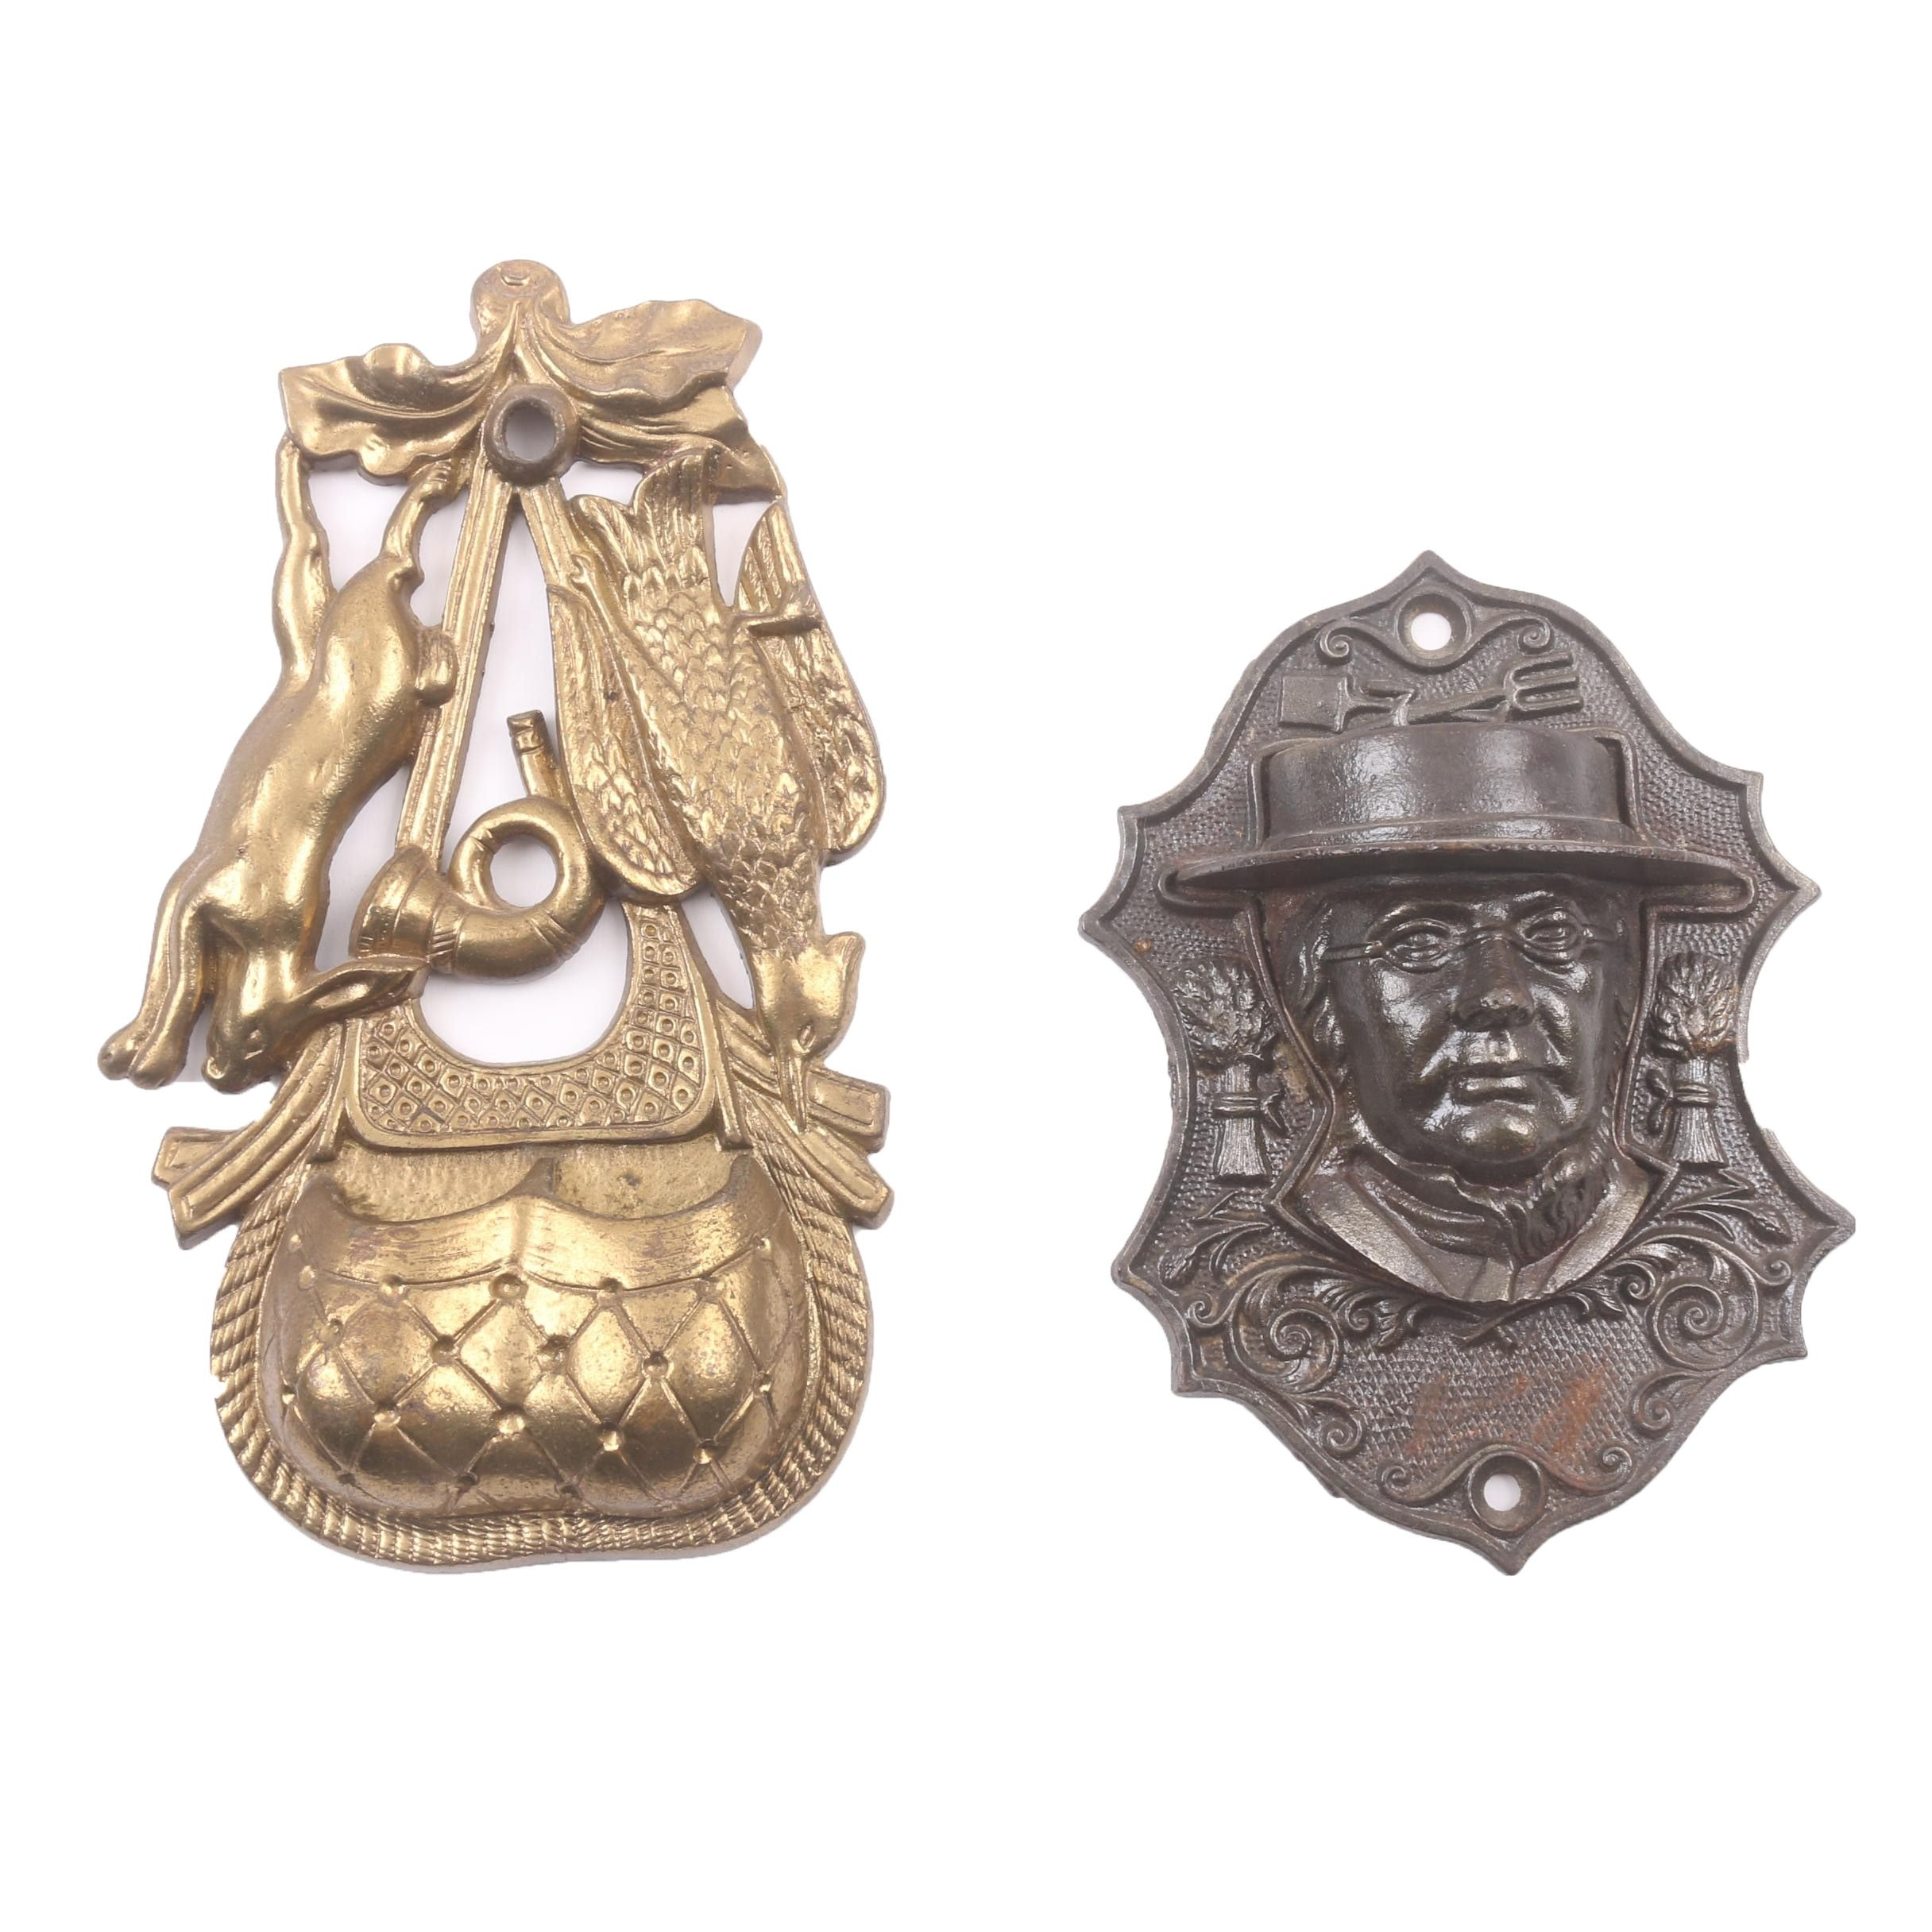 Cast Brass and Cast Iron Wall Hanging Match Holders